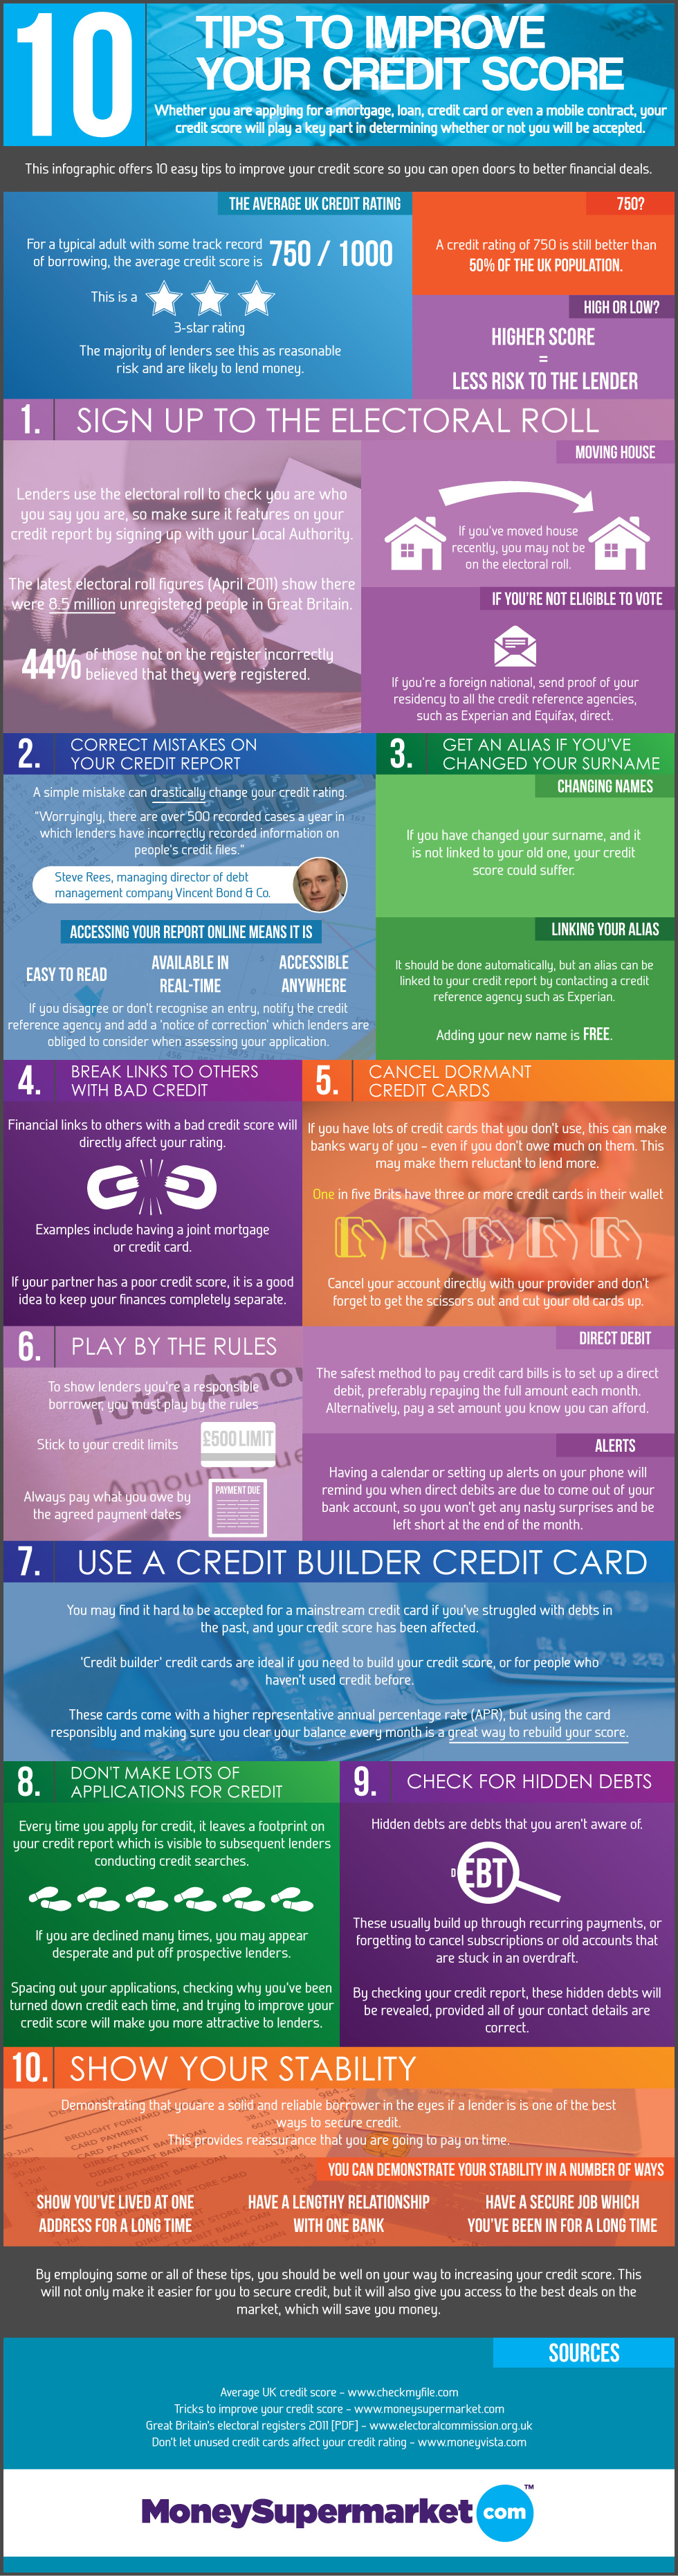 10 tips to improve your credit score visual ccuart Image collections